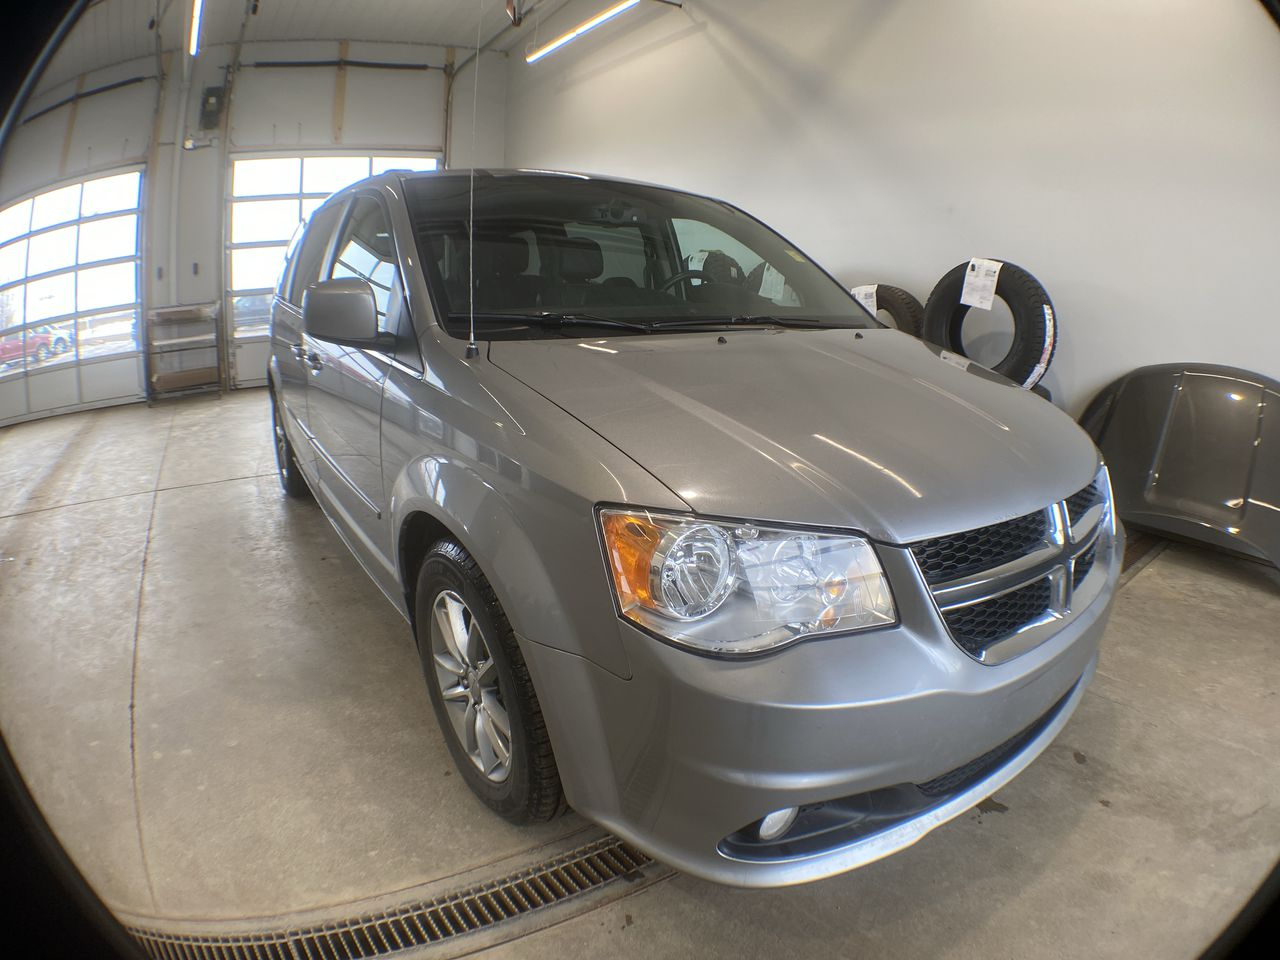 2015 Dodge Grand Caravan Sxt Premium Plus (8527C) Main Image